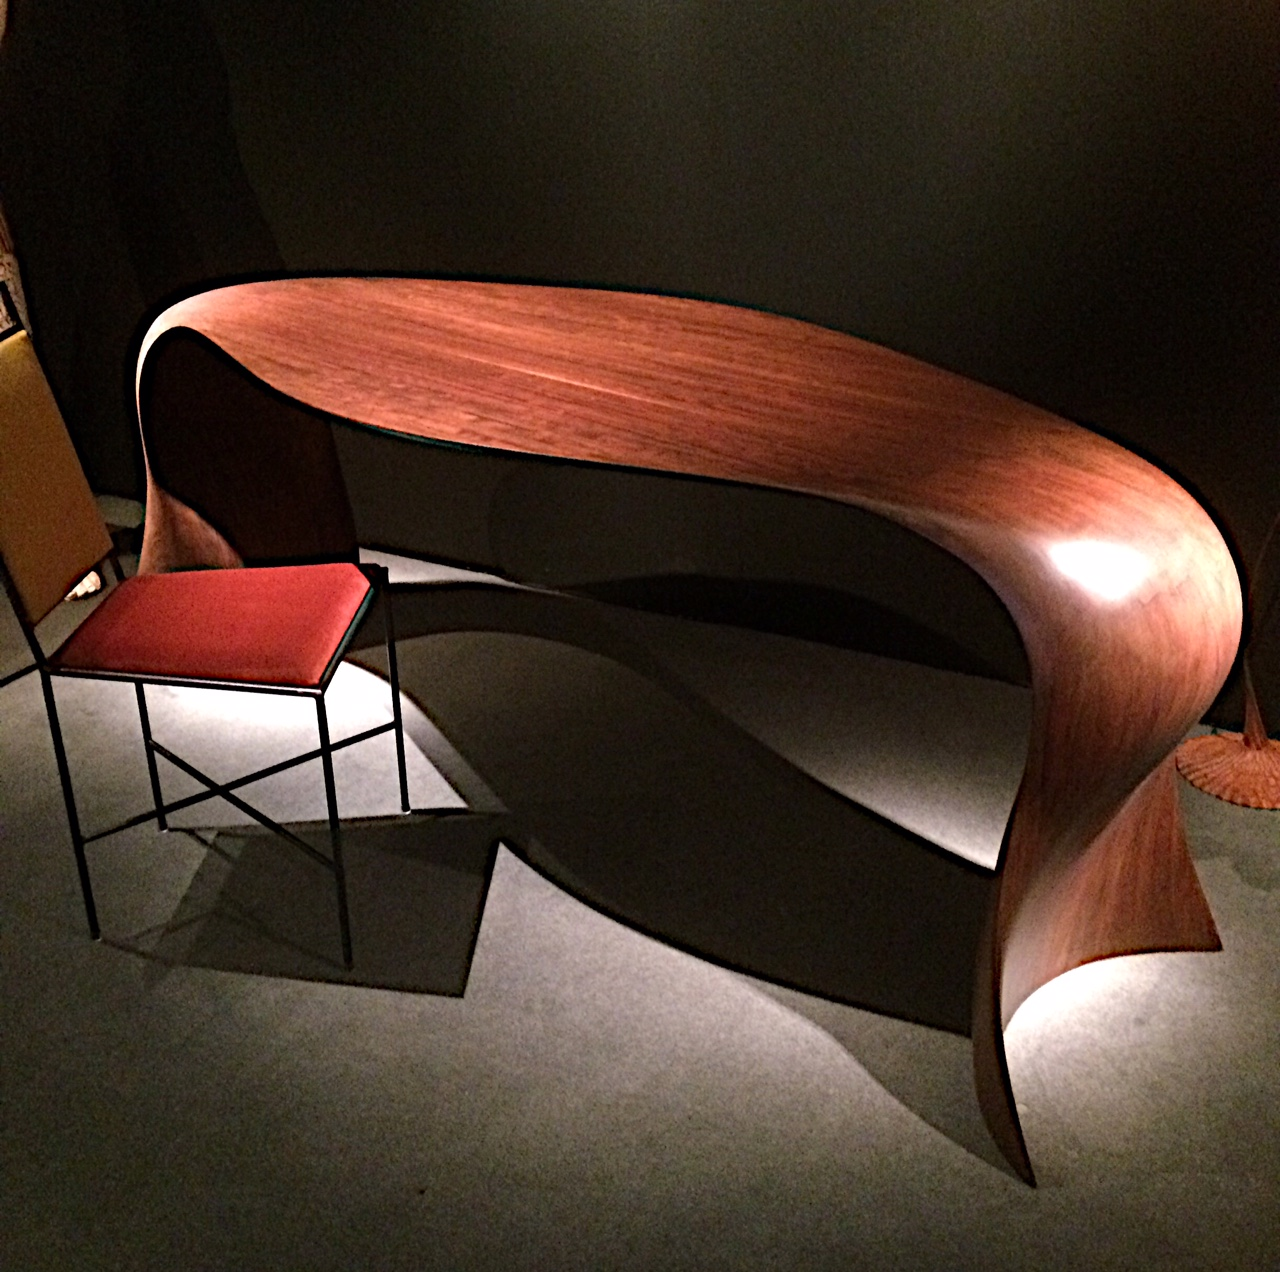 Antonine Catzeflis table by Benjamin Paget